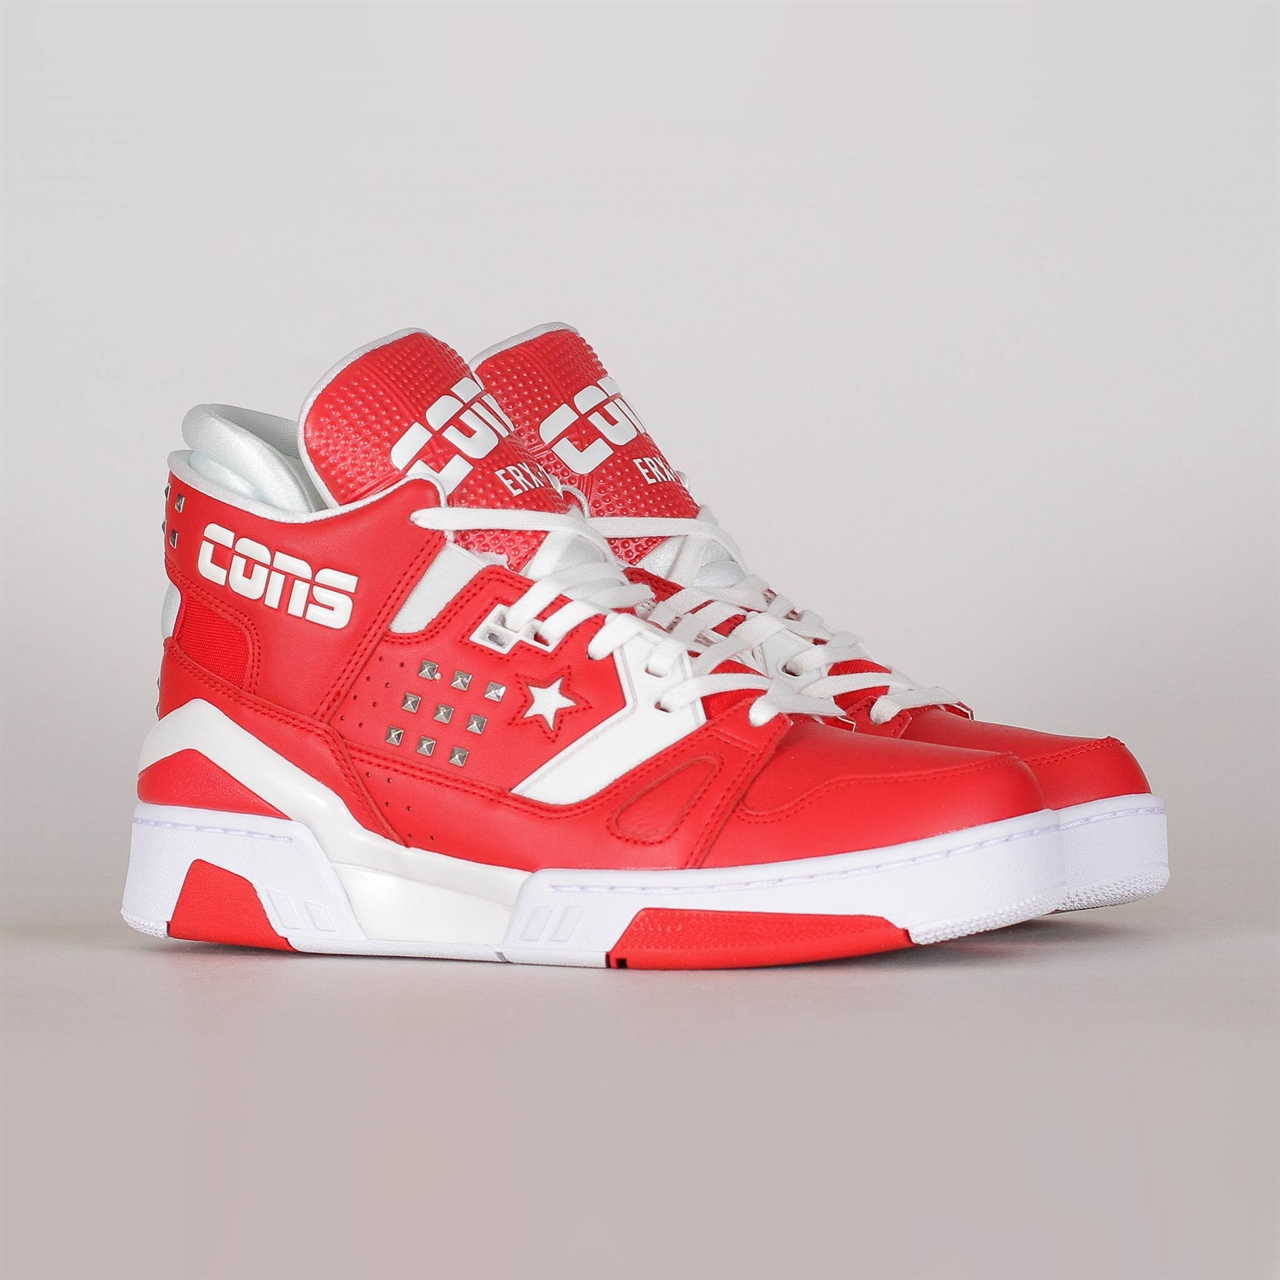 a6359834b3121f Shelta - Converse x Just Don ERX 260 Mid (1633800C)